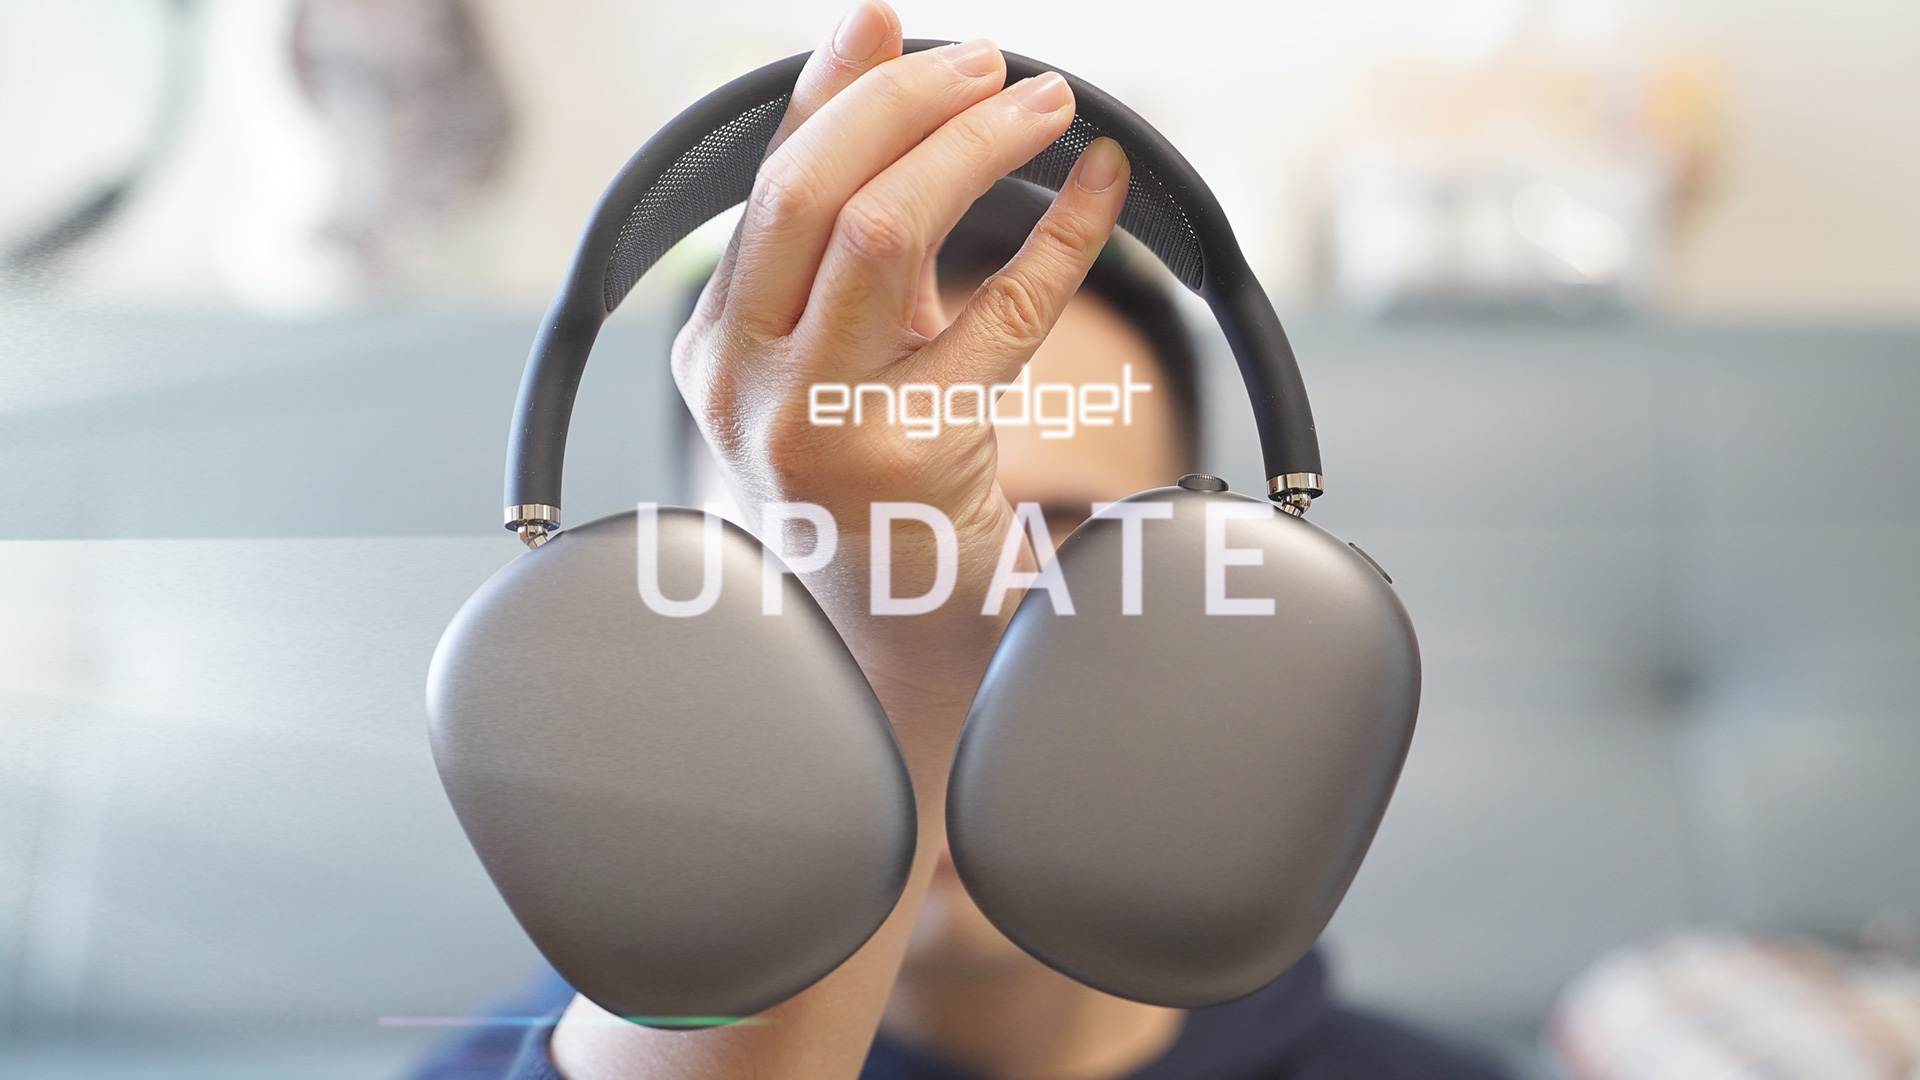 Engadget Update EP84